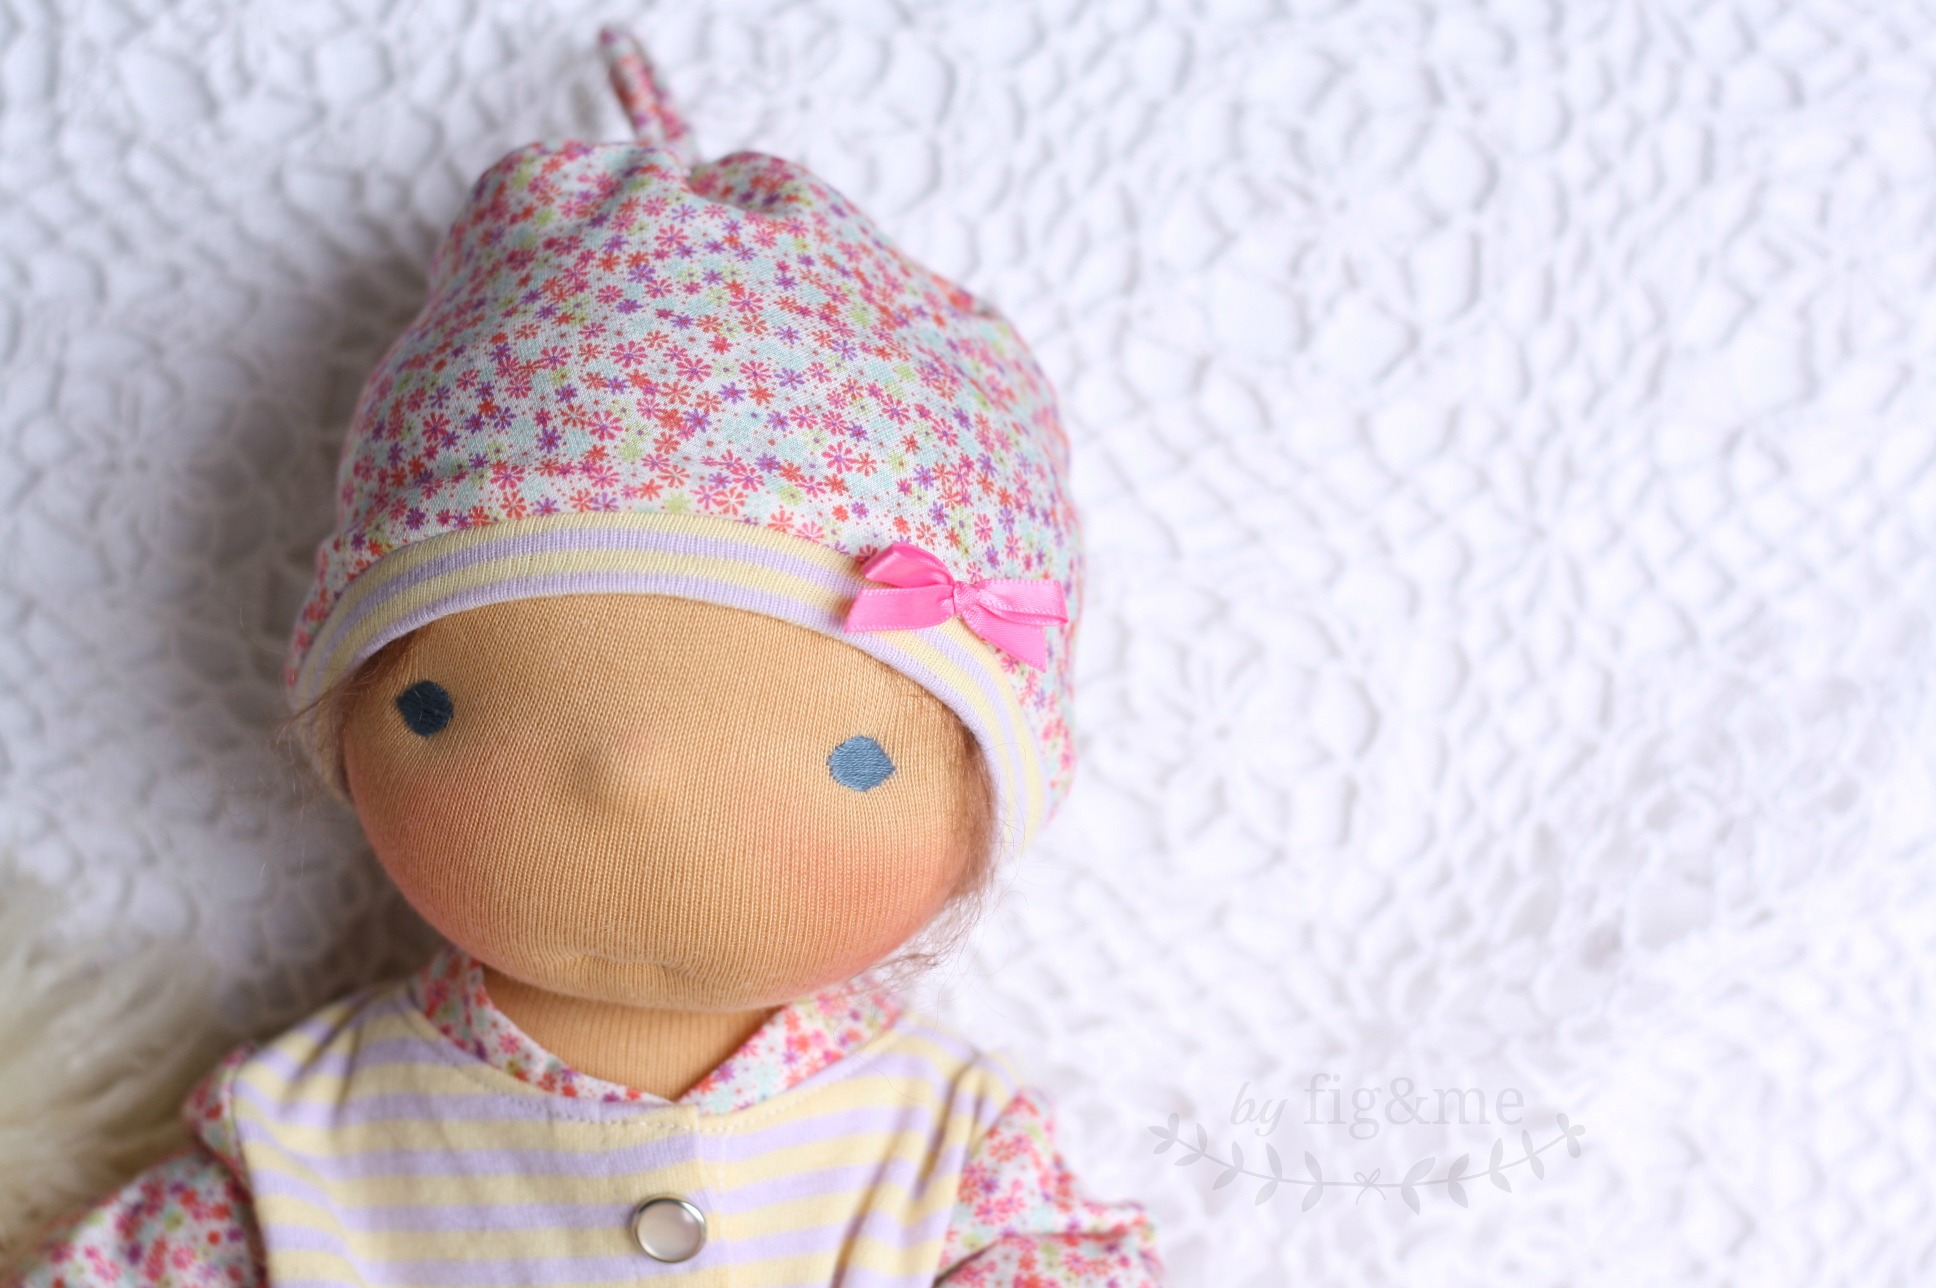 Baby doll in knotty hat, fig and me.